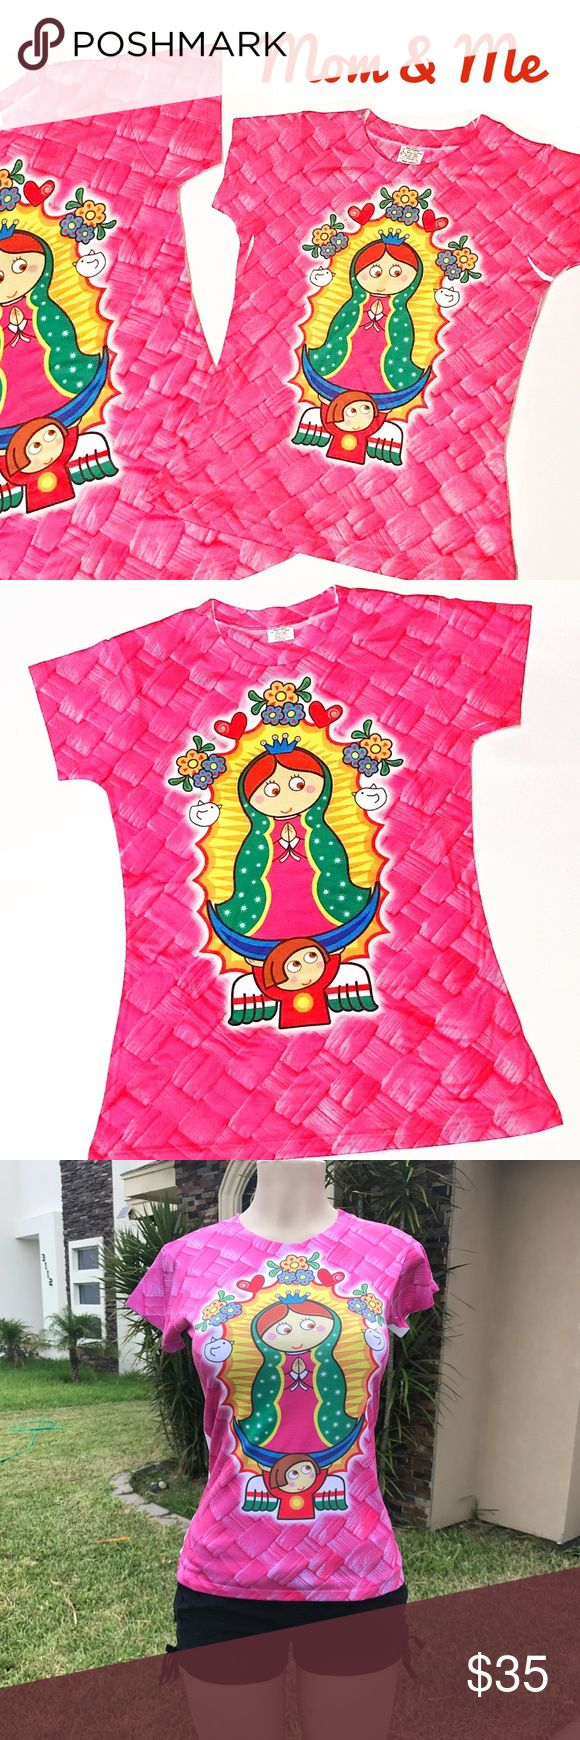 Mommy and Me Our Lady of Guadalupe 2pc Shirt Set New Cielito Lindo Shirts & Tops Tees - Short Sleeve